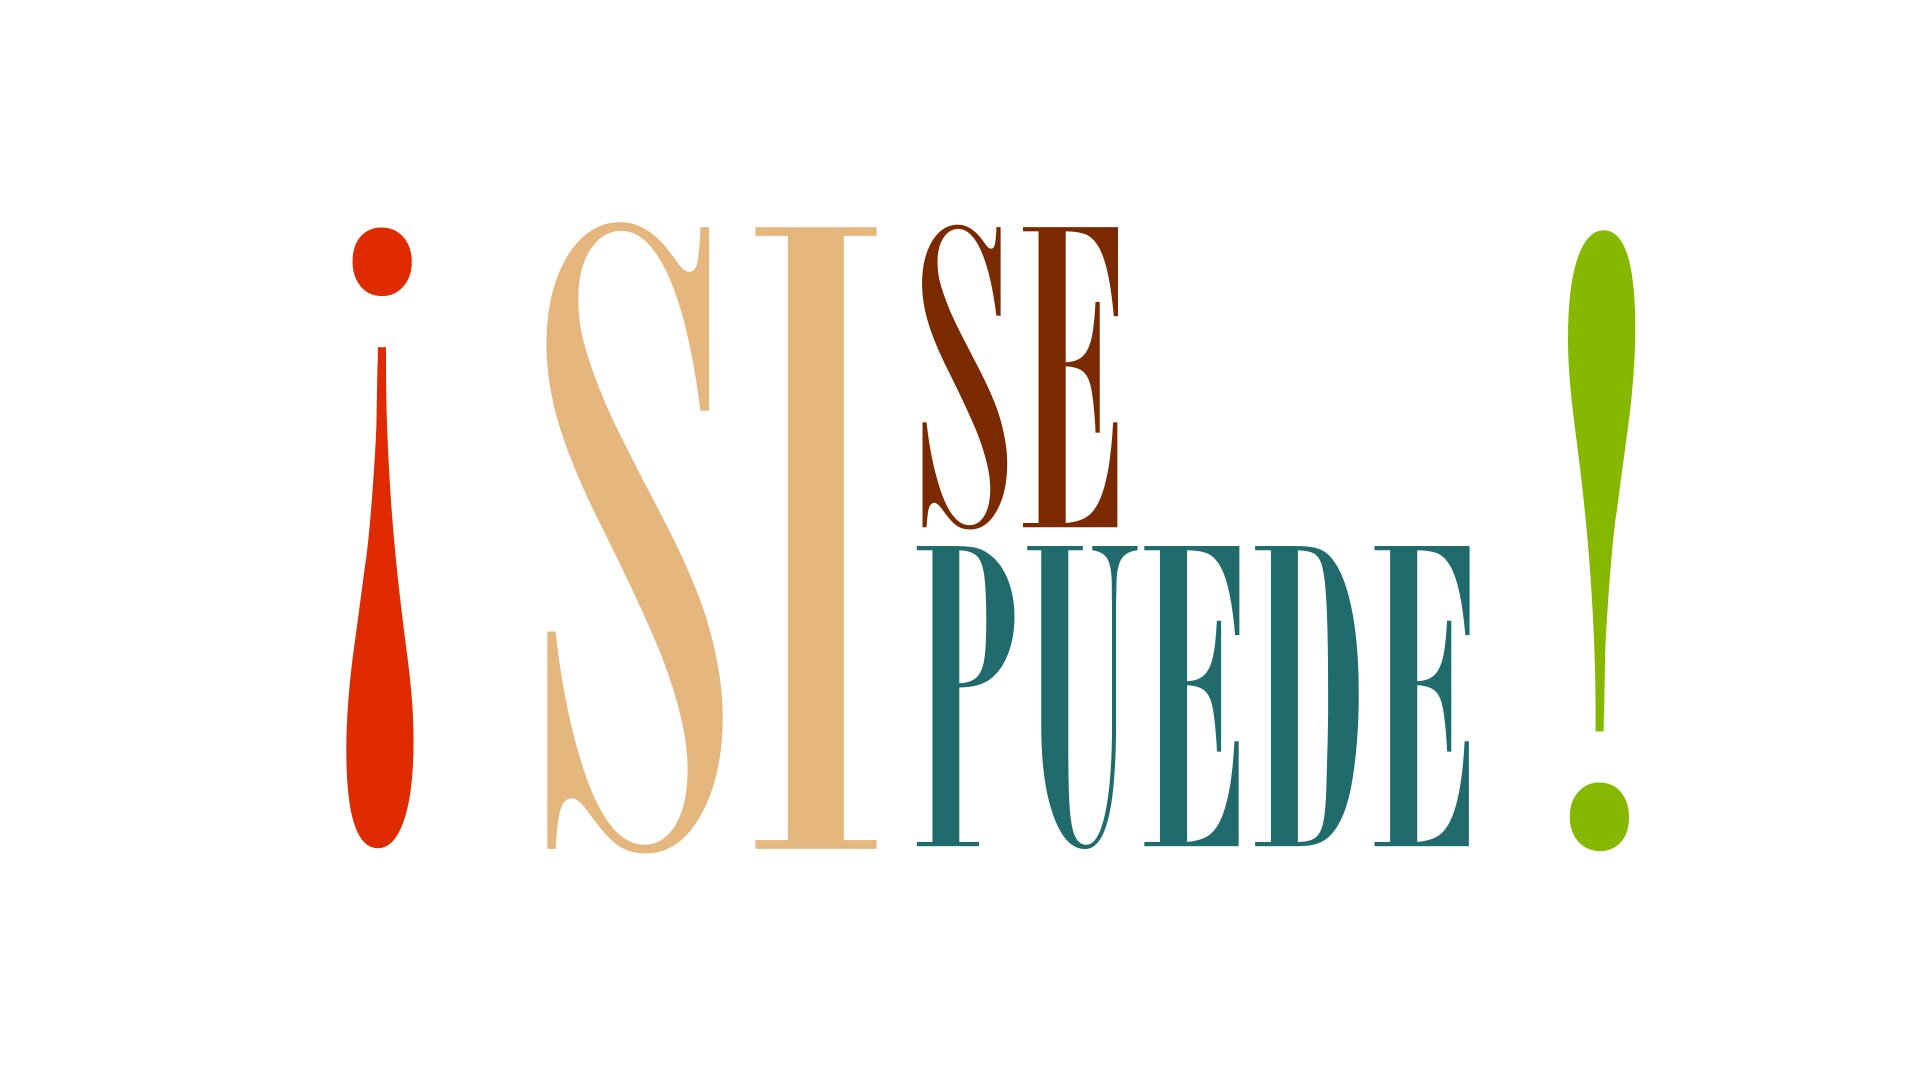 an analysis of si se puede by cesar e chavez The history of si se puede twitter facebook youtube email share link history of ¡si se puede in may 1972, a decade after cesar chavez founded the union, the.